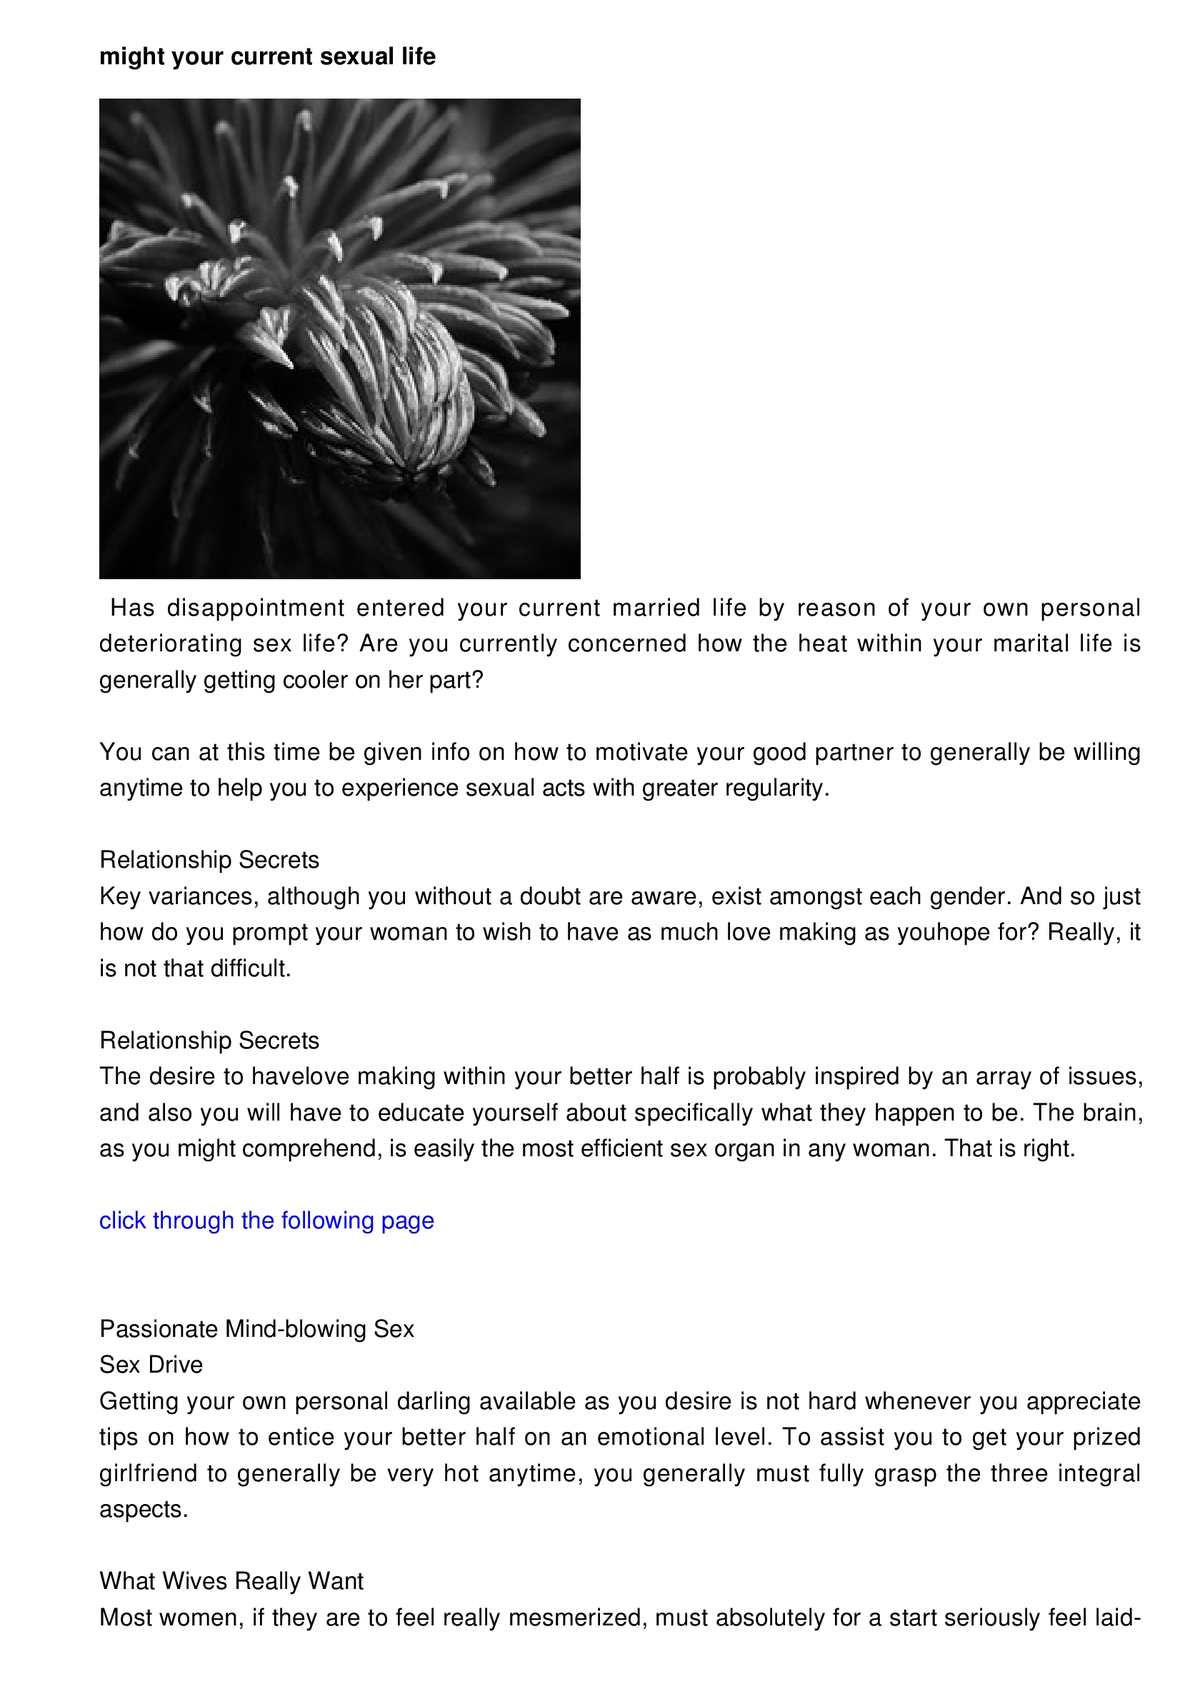 Calaméo - Can You Carve Out a Contented Sexual Life? Signs Or